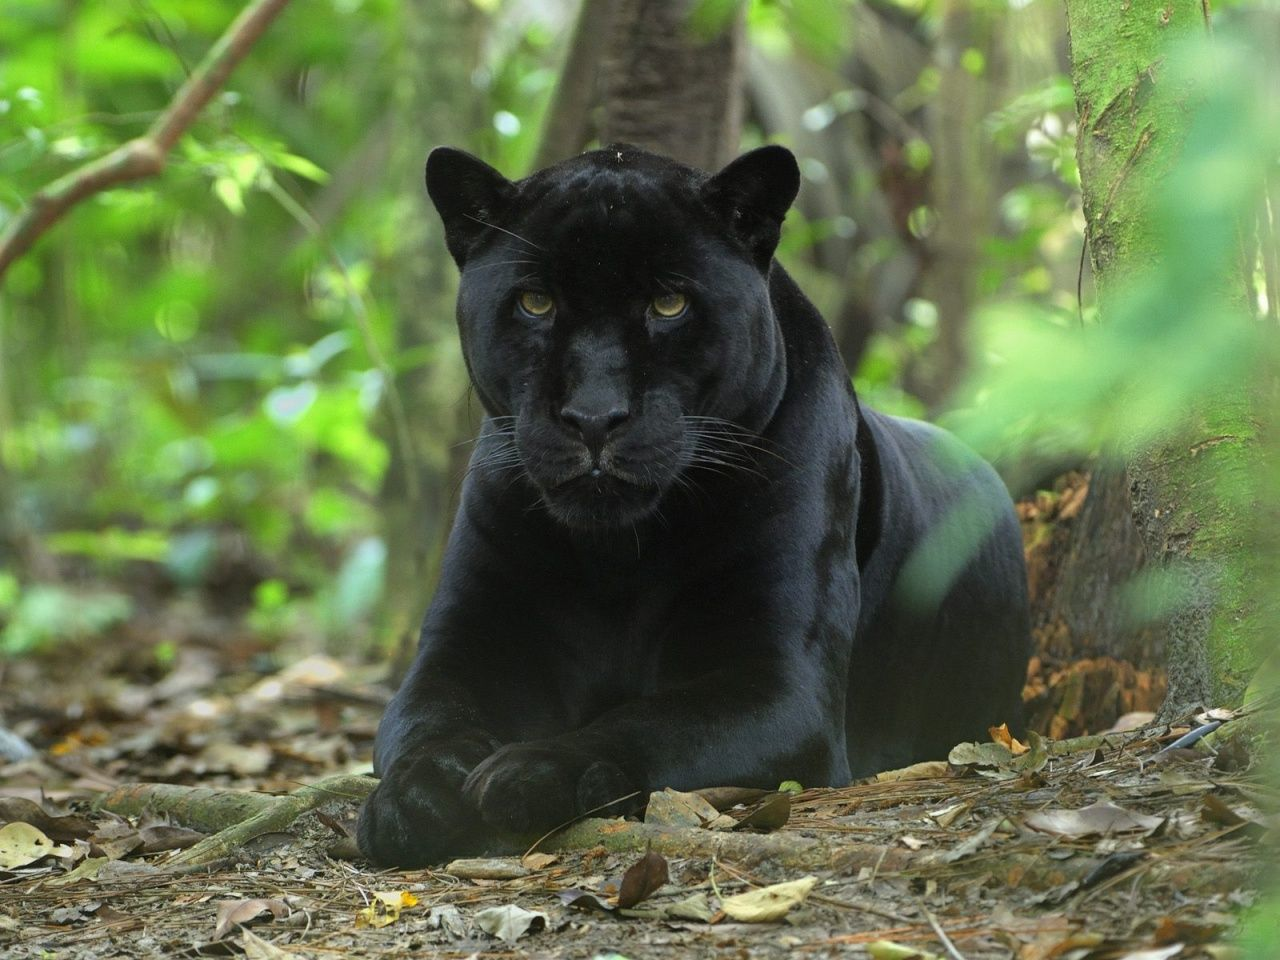 The Black Panther Animals beautiful, Big cats, Beautiful